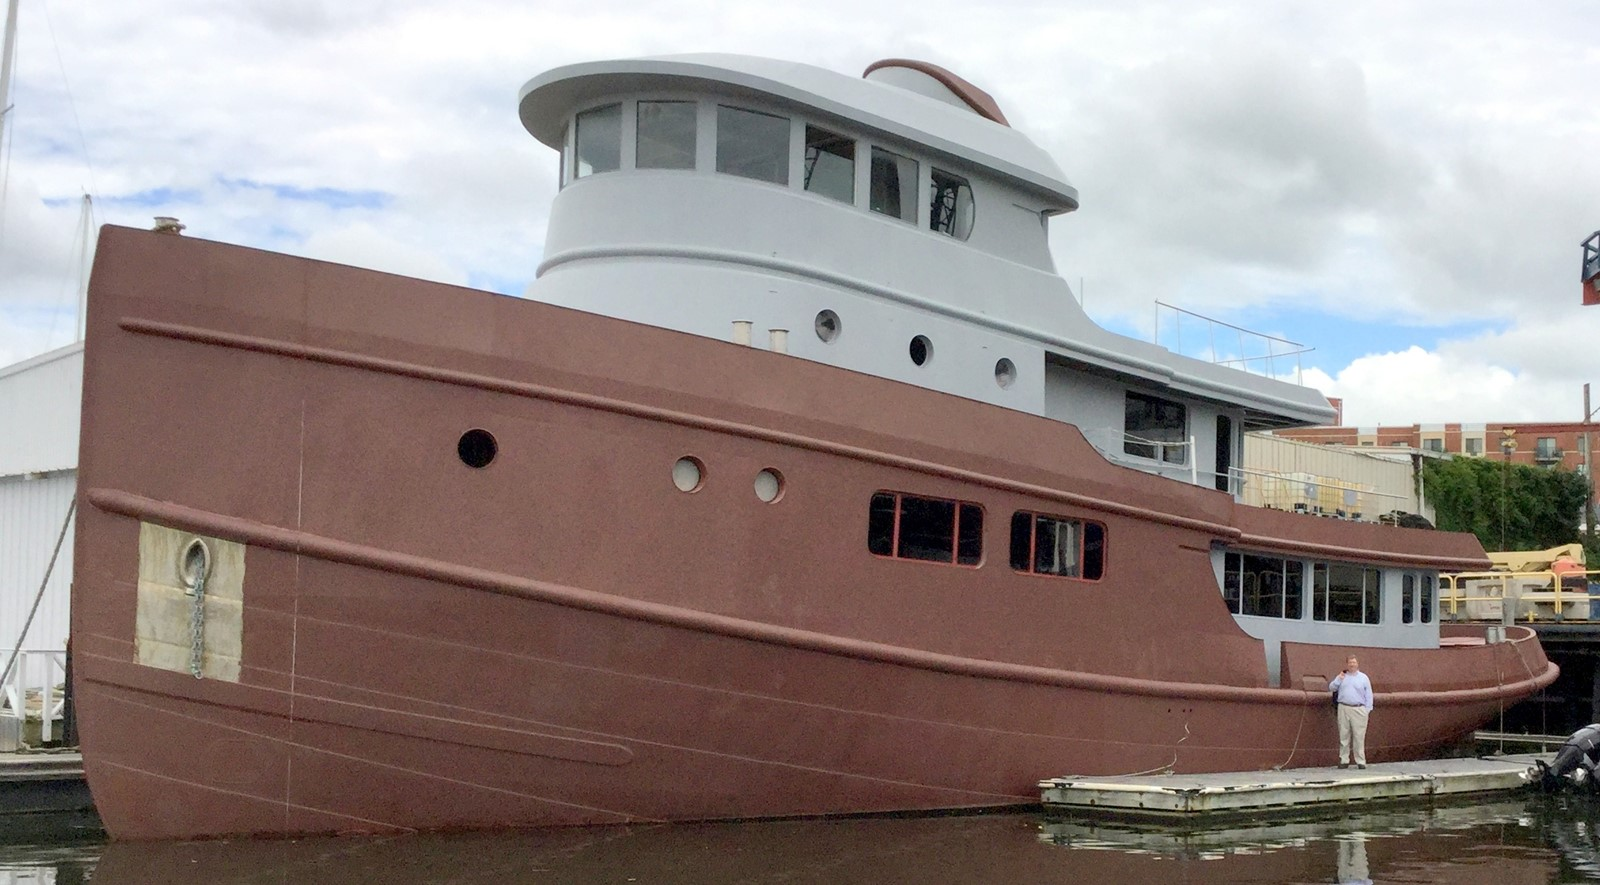 2018 GULFPORT SHIPBUILDING CORP Tug Boat Commercial Vessel 2310945